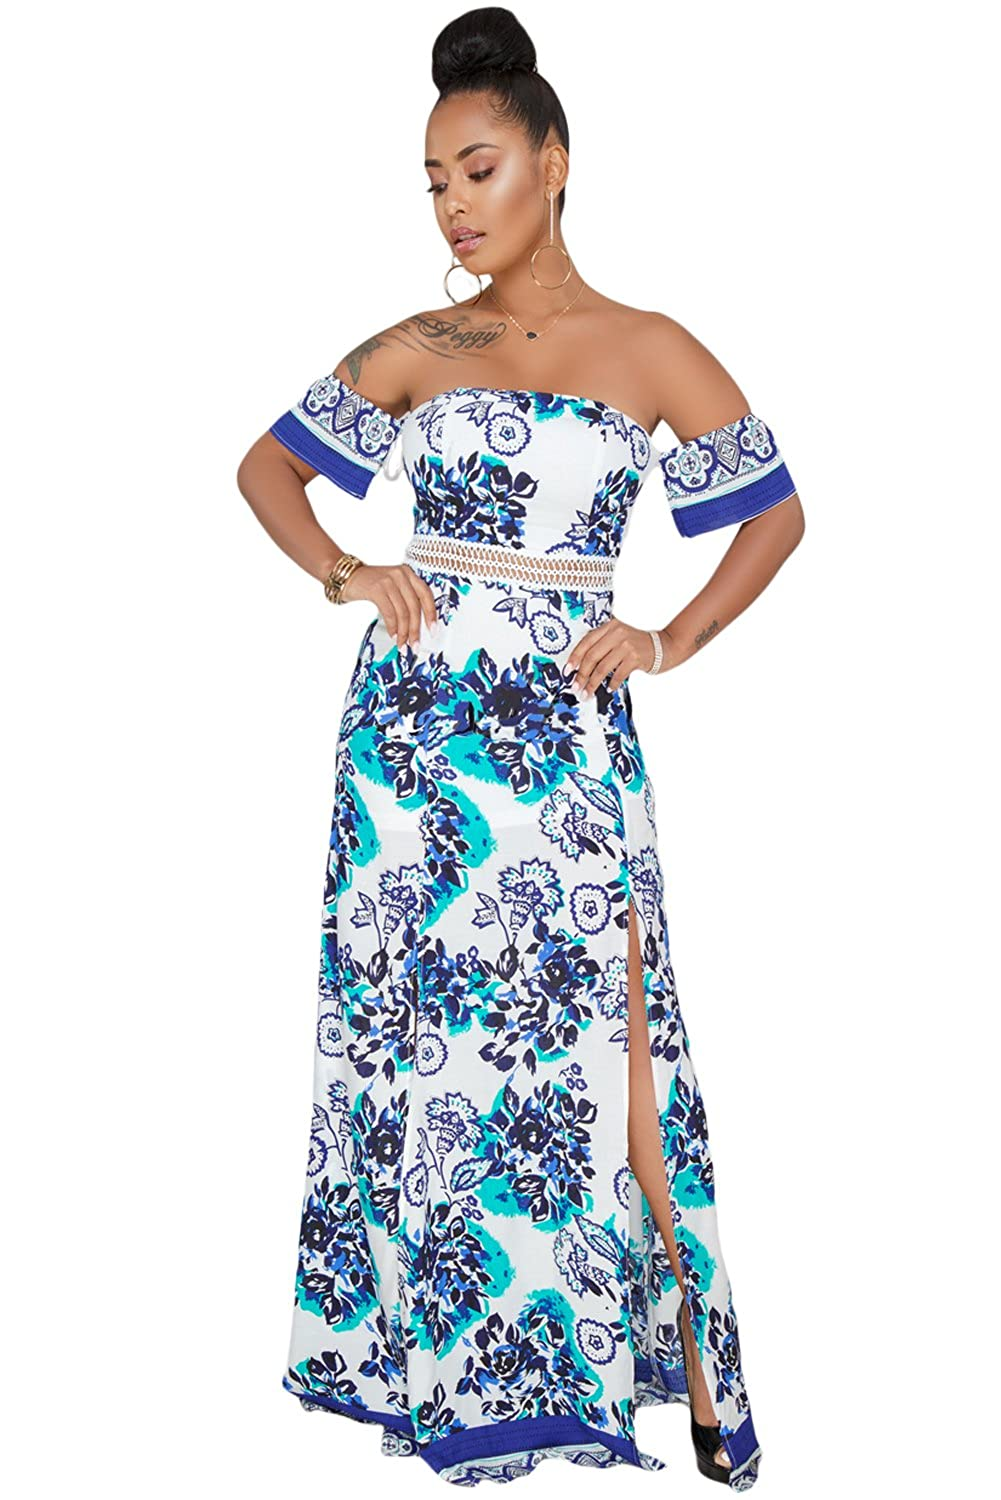 0c7d72c50a5 Evercloths Women s Western Wear Floral Print Off Shoulder Dress  (Blue Small)  Amazon.in  Clothing   Accessories